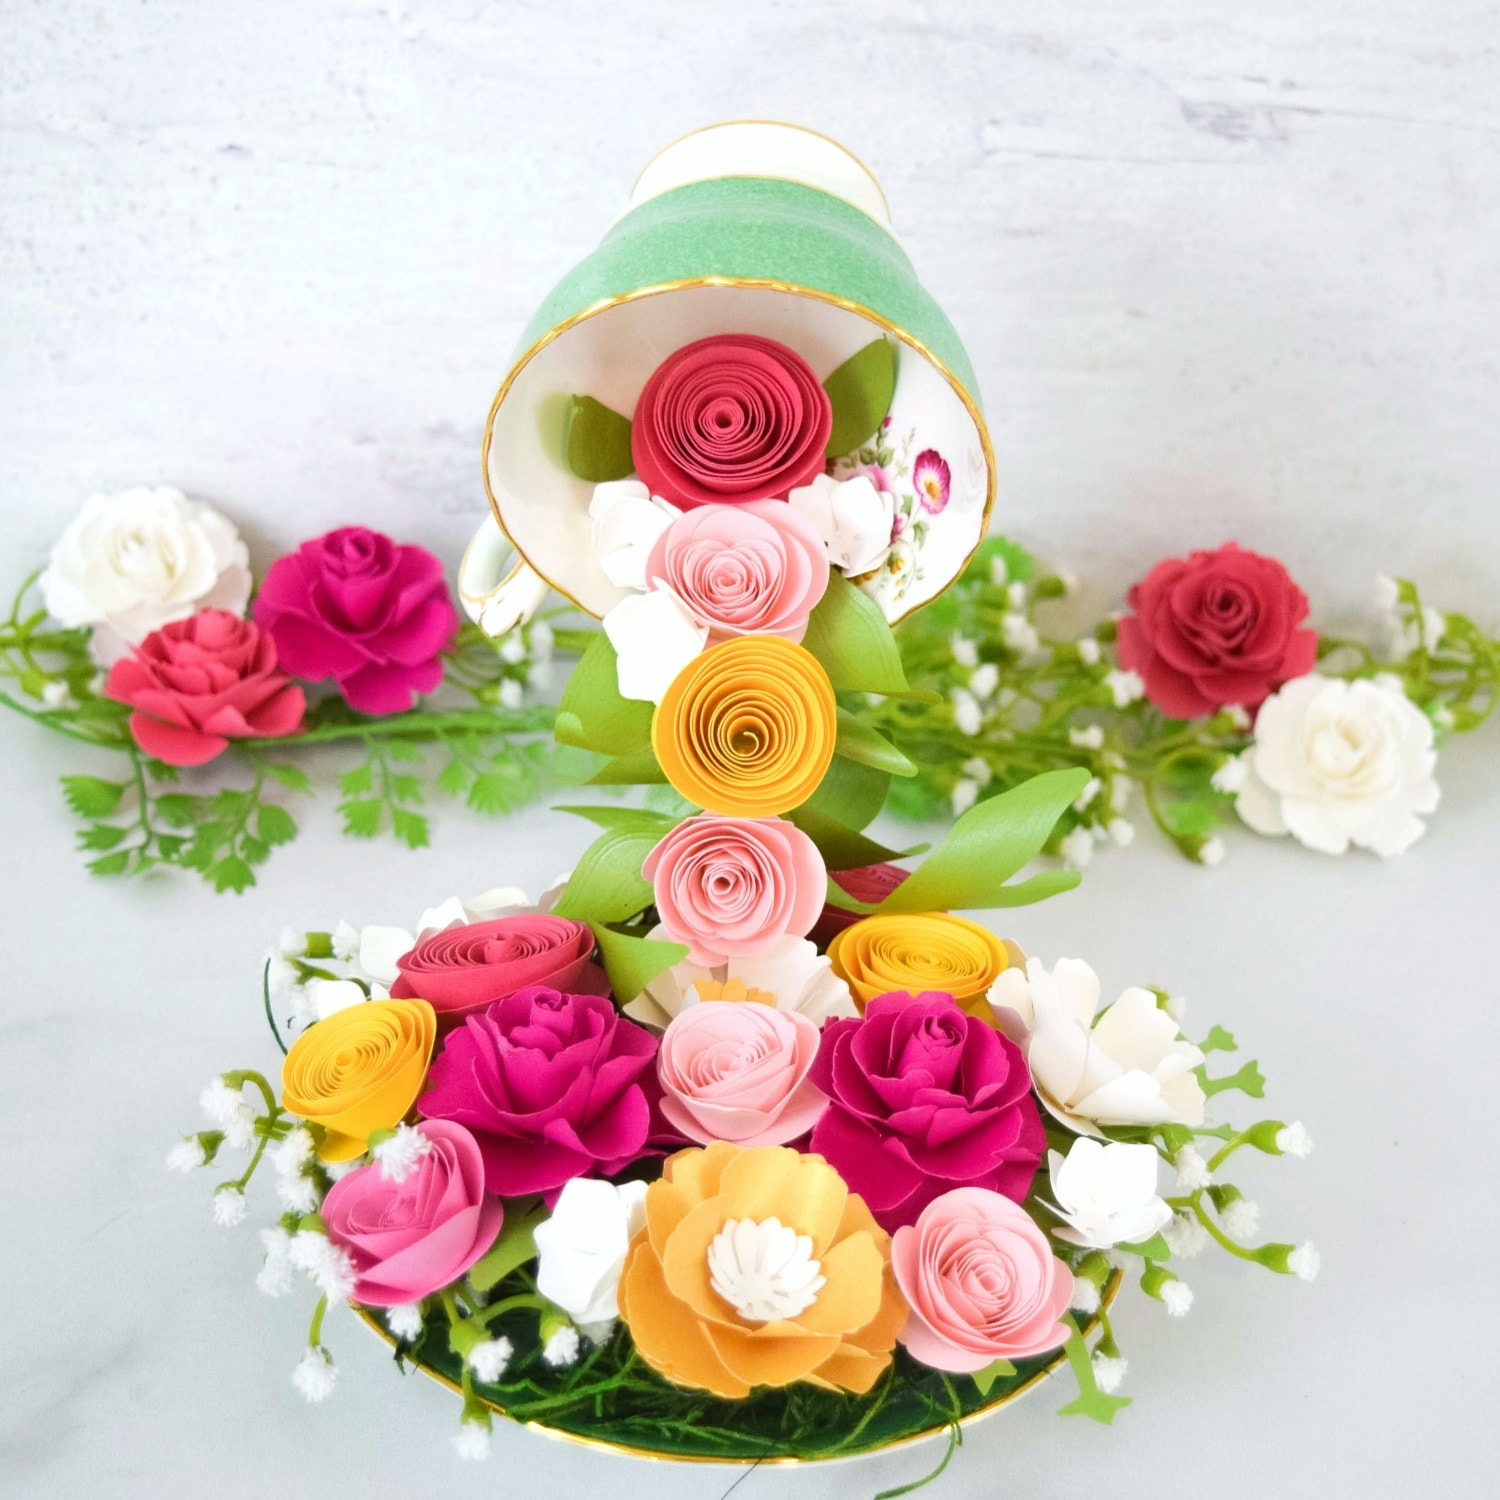 How to Make a Floating Tea Cups with Cascading Paper Flowers